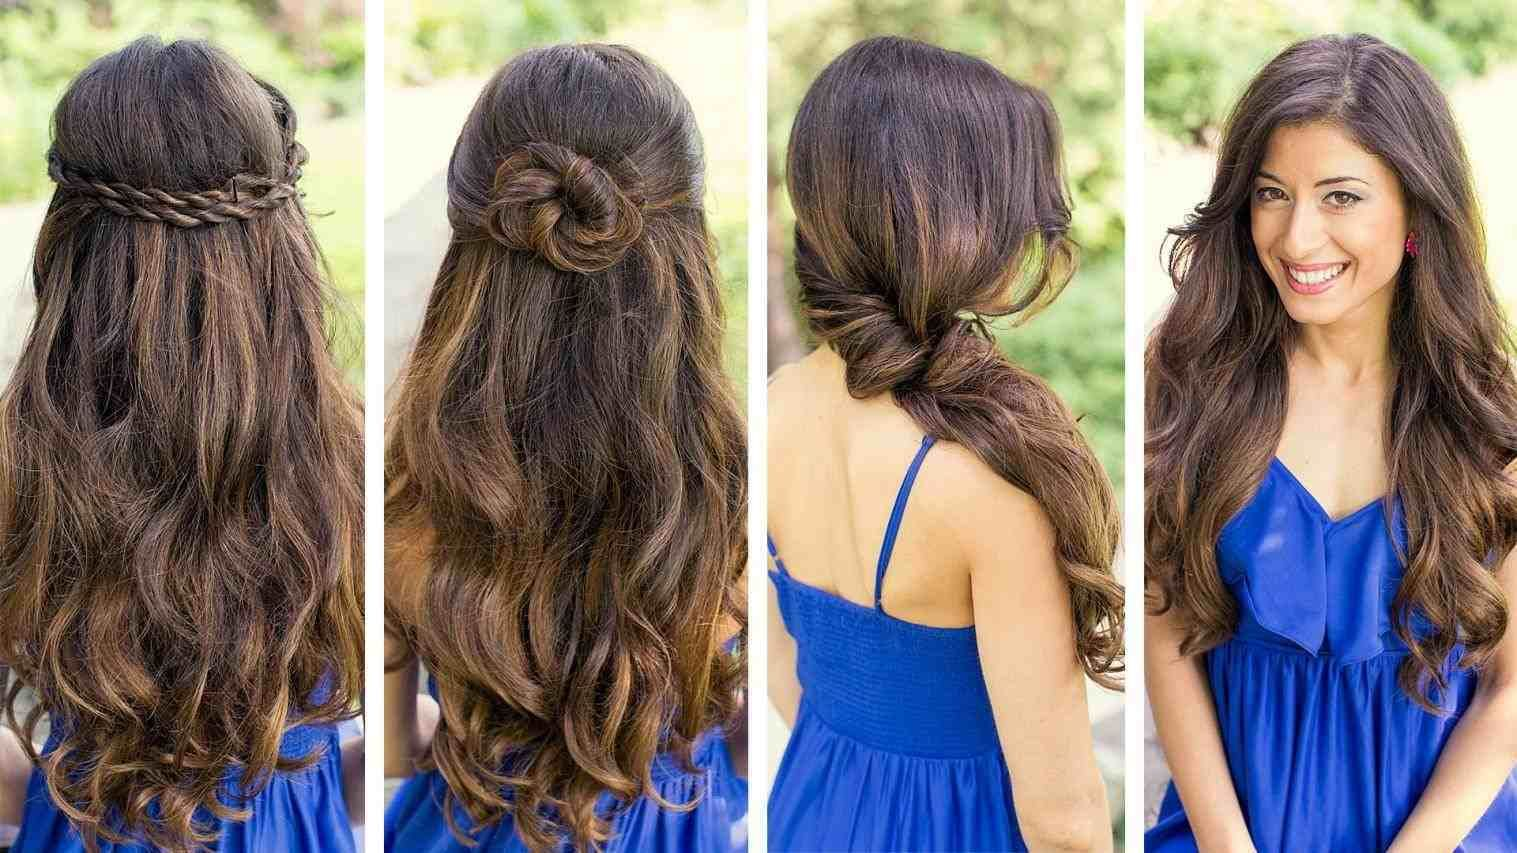 15 Easy Rules Of Simple Hairstyle For Party Simple Long Hair Styles Easy Hairstyles Hair Styles